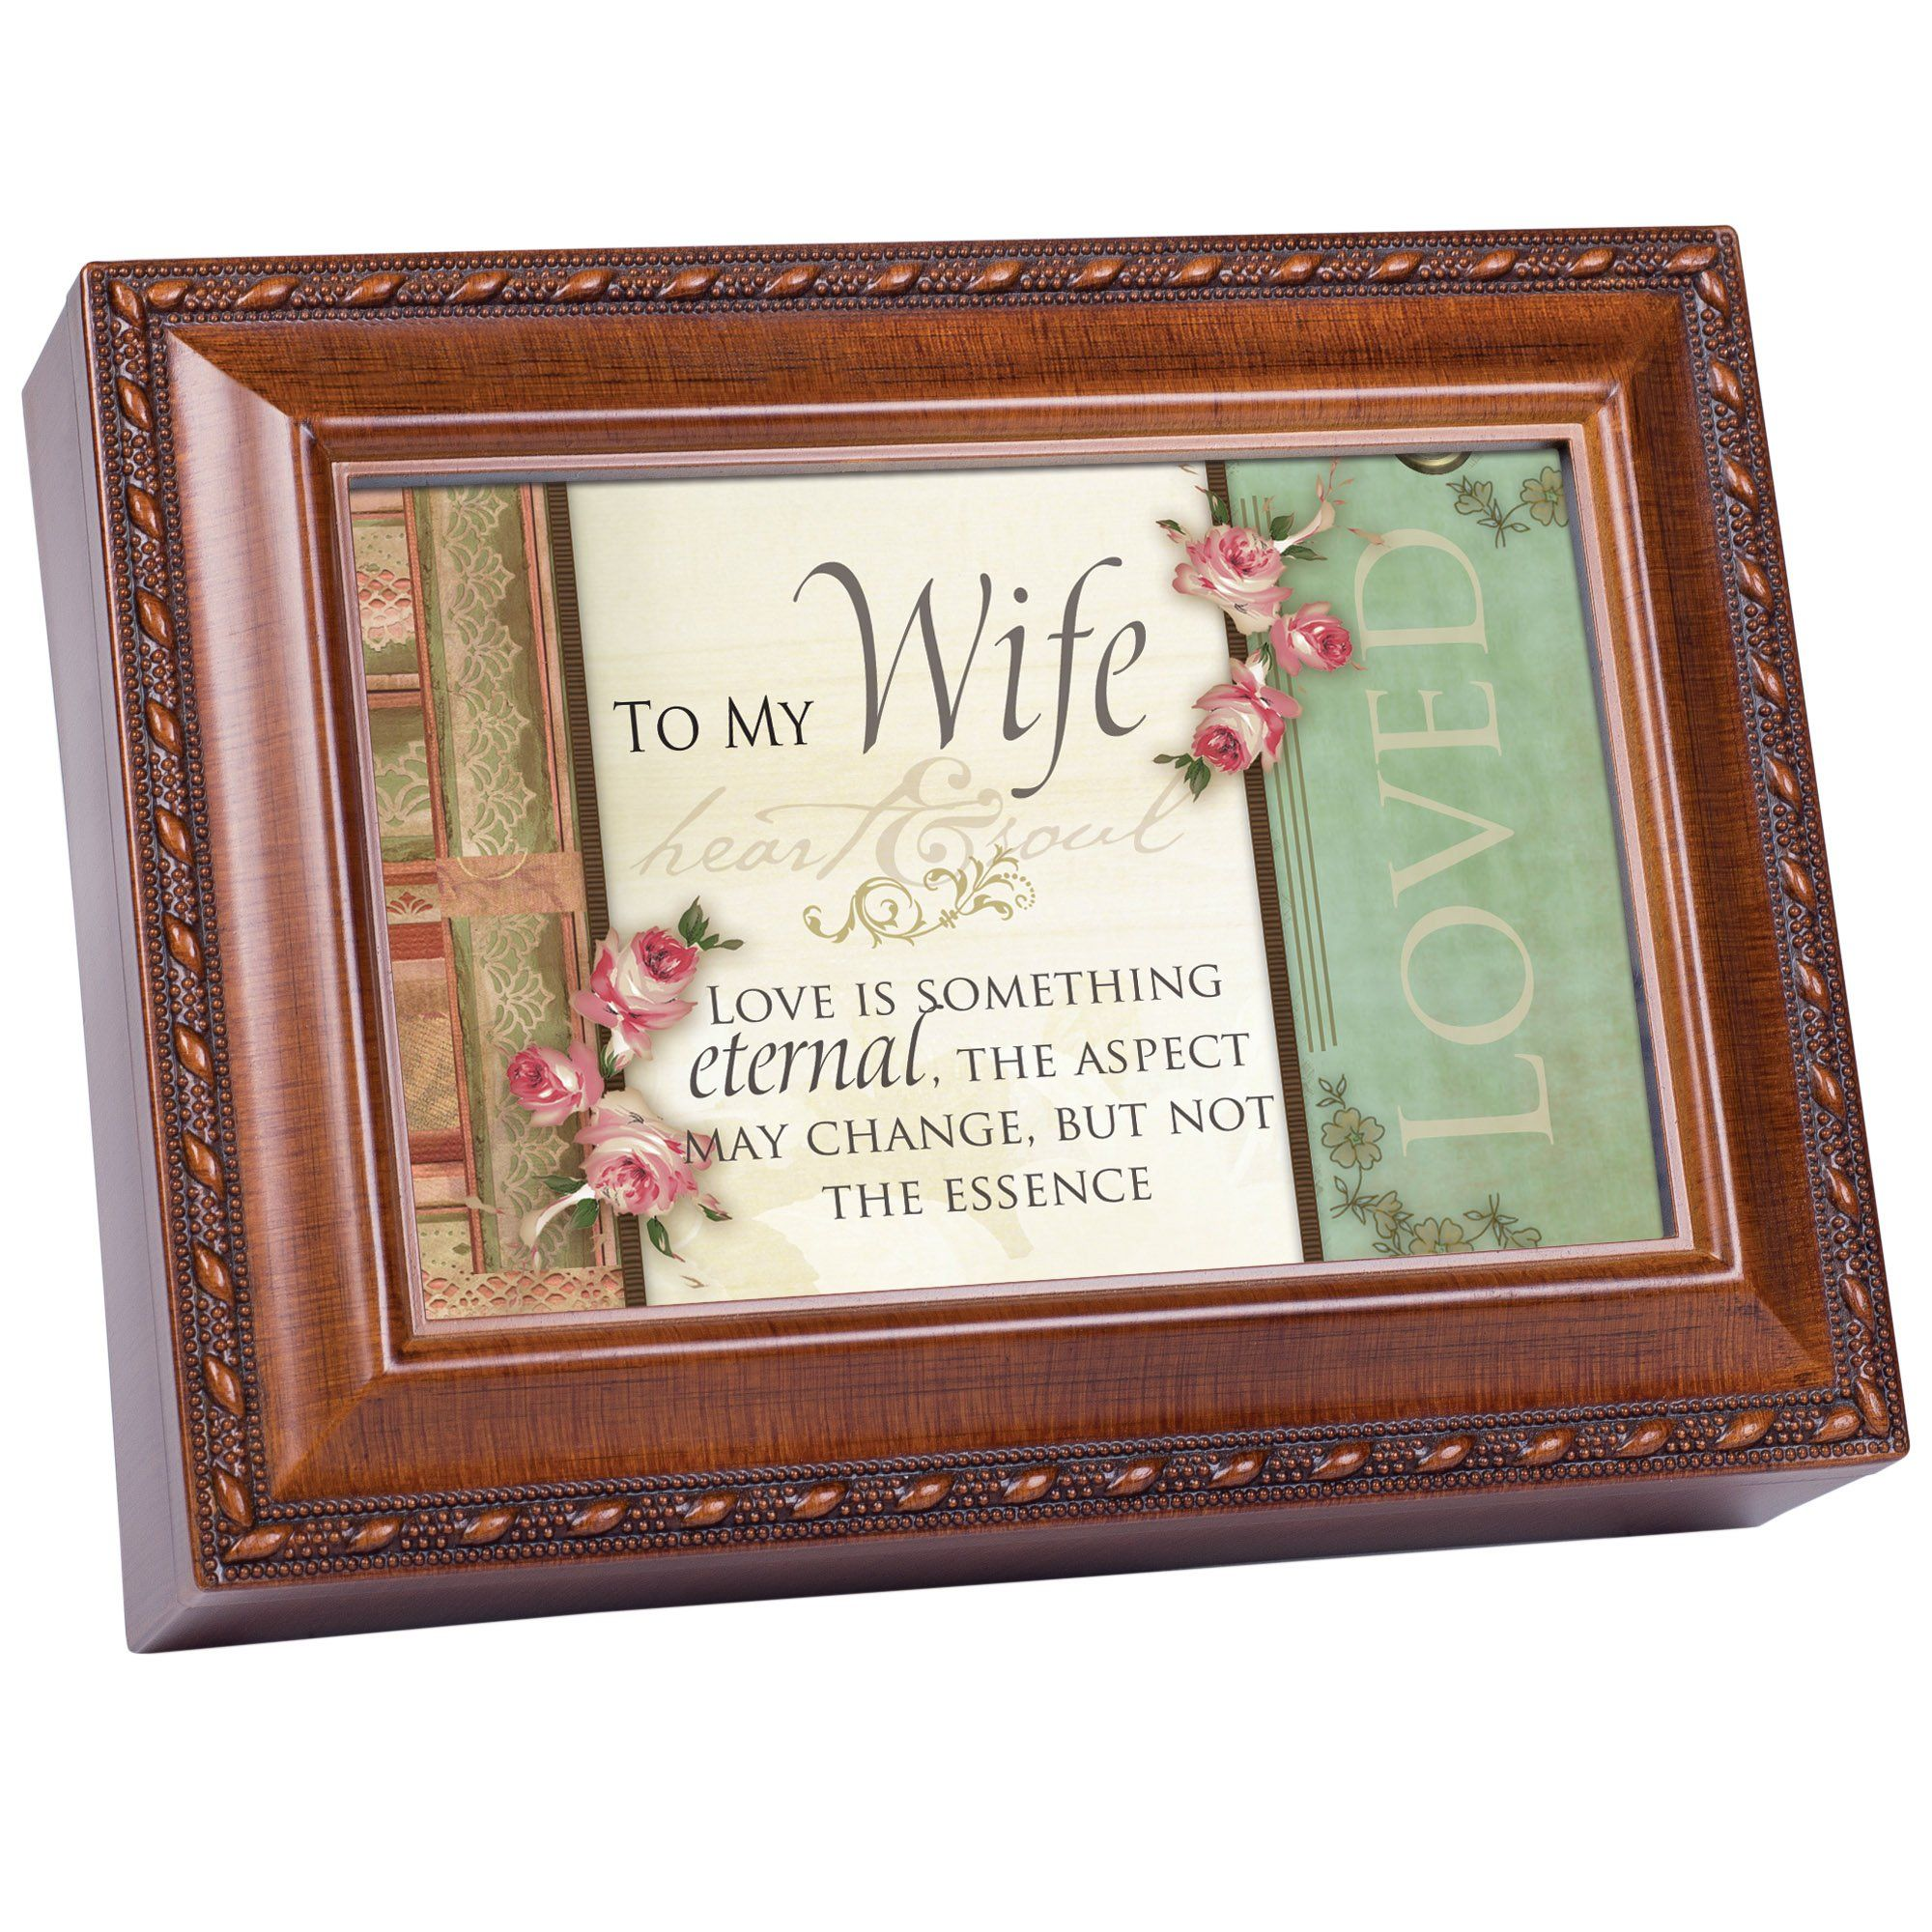 To My Wife Woodgrain Cottage Garden Traditional Music Box Plays ...